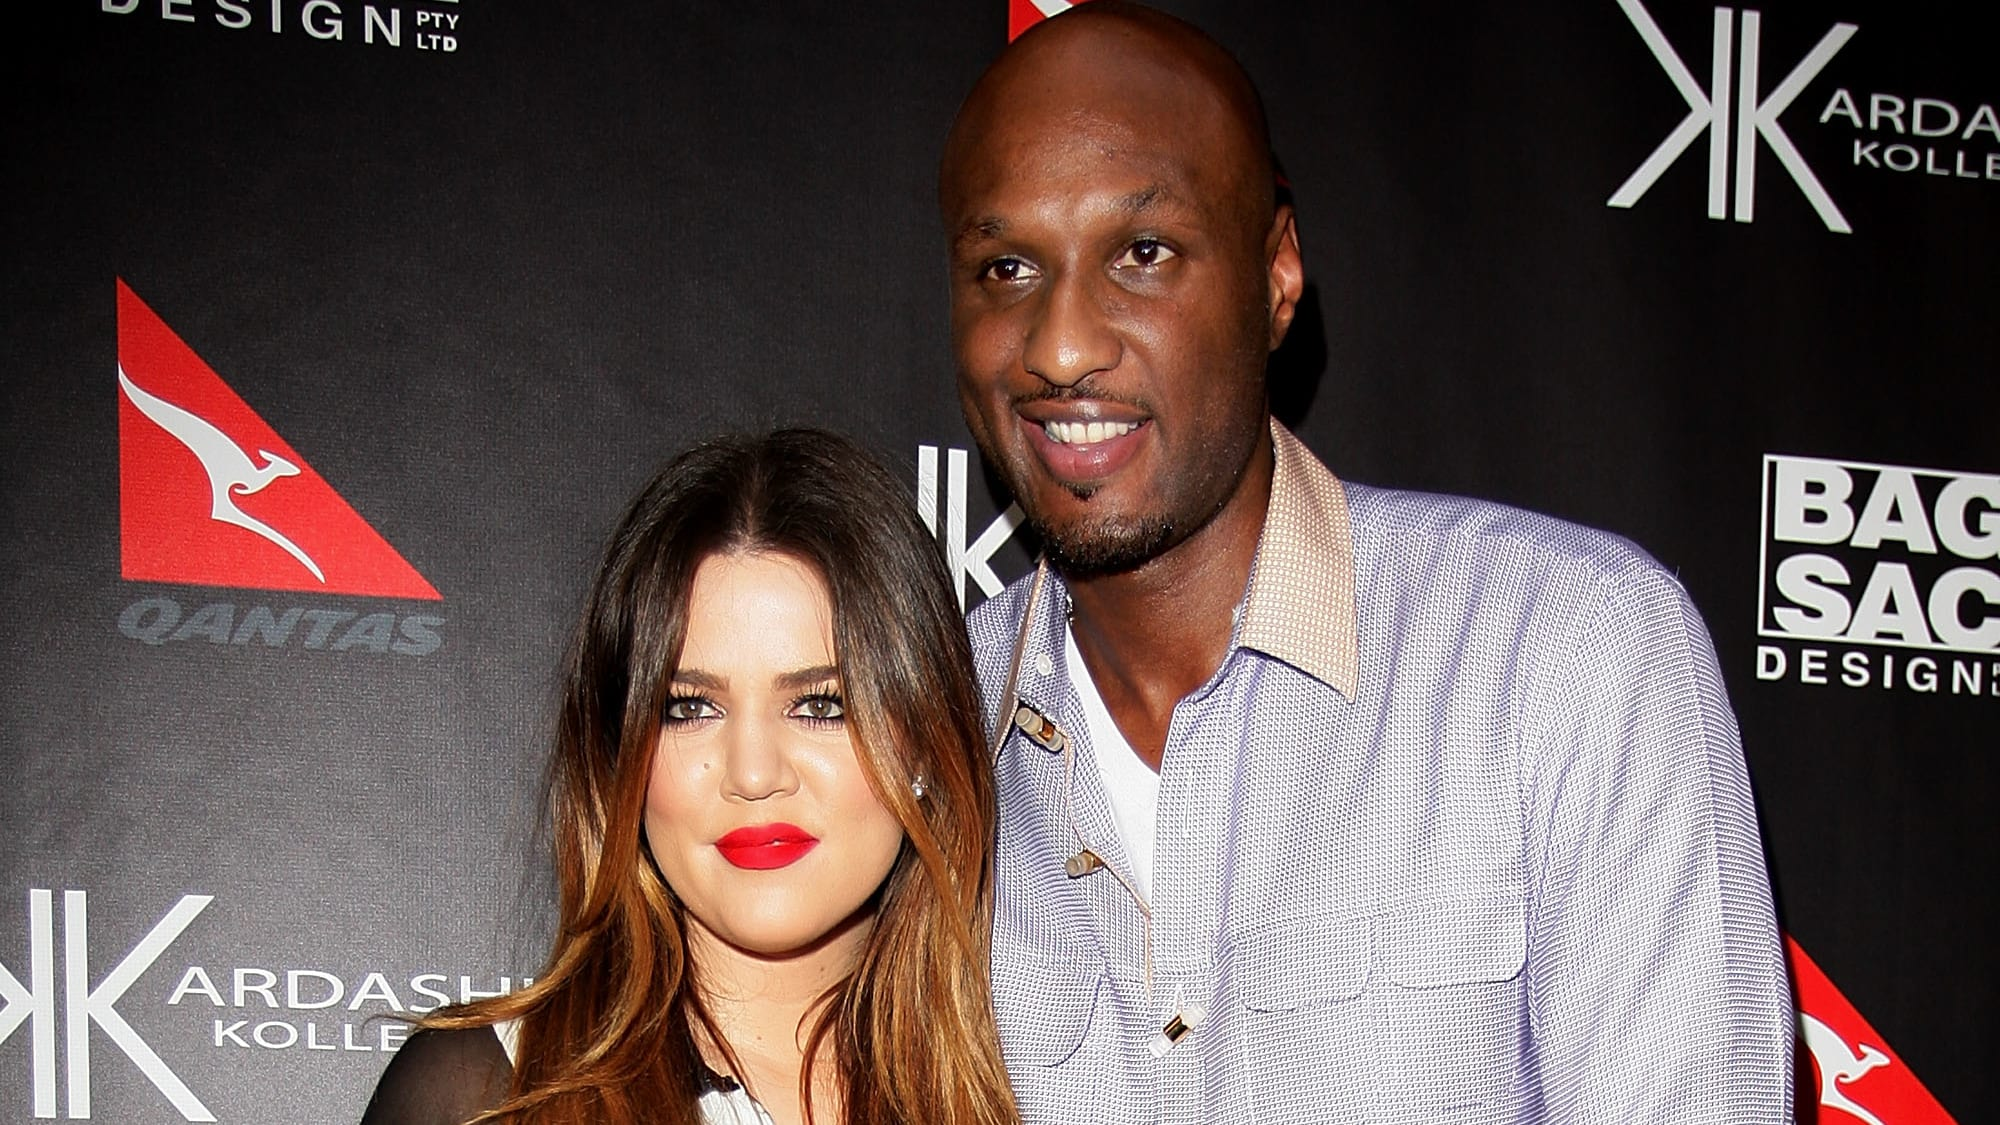 SYDNEY, AUSTRALIA - NOVEMBER 02:  Khloe Kardashian Odom and Lamar Odom arrive at the Kardashian Kollection Handbag launch at Hugo's on November 2, 2011 in Sydney, Australia. The Kardashian sisters will make an in-store appearance at David Jones tomorrow.  (Photo by Lisa Maree Williams/Getty Images)